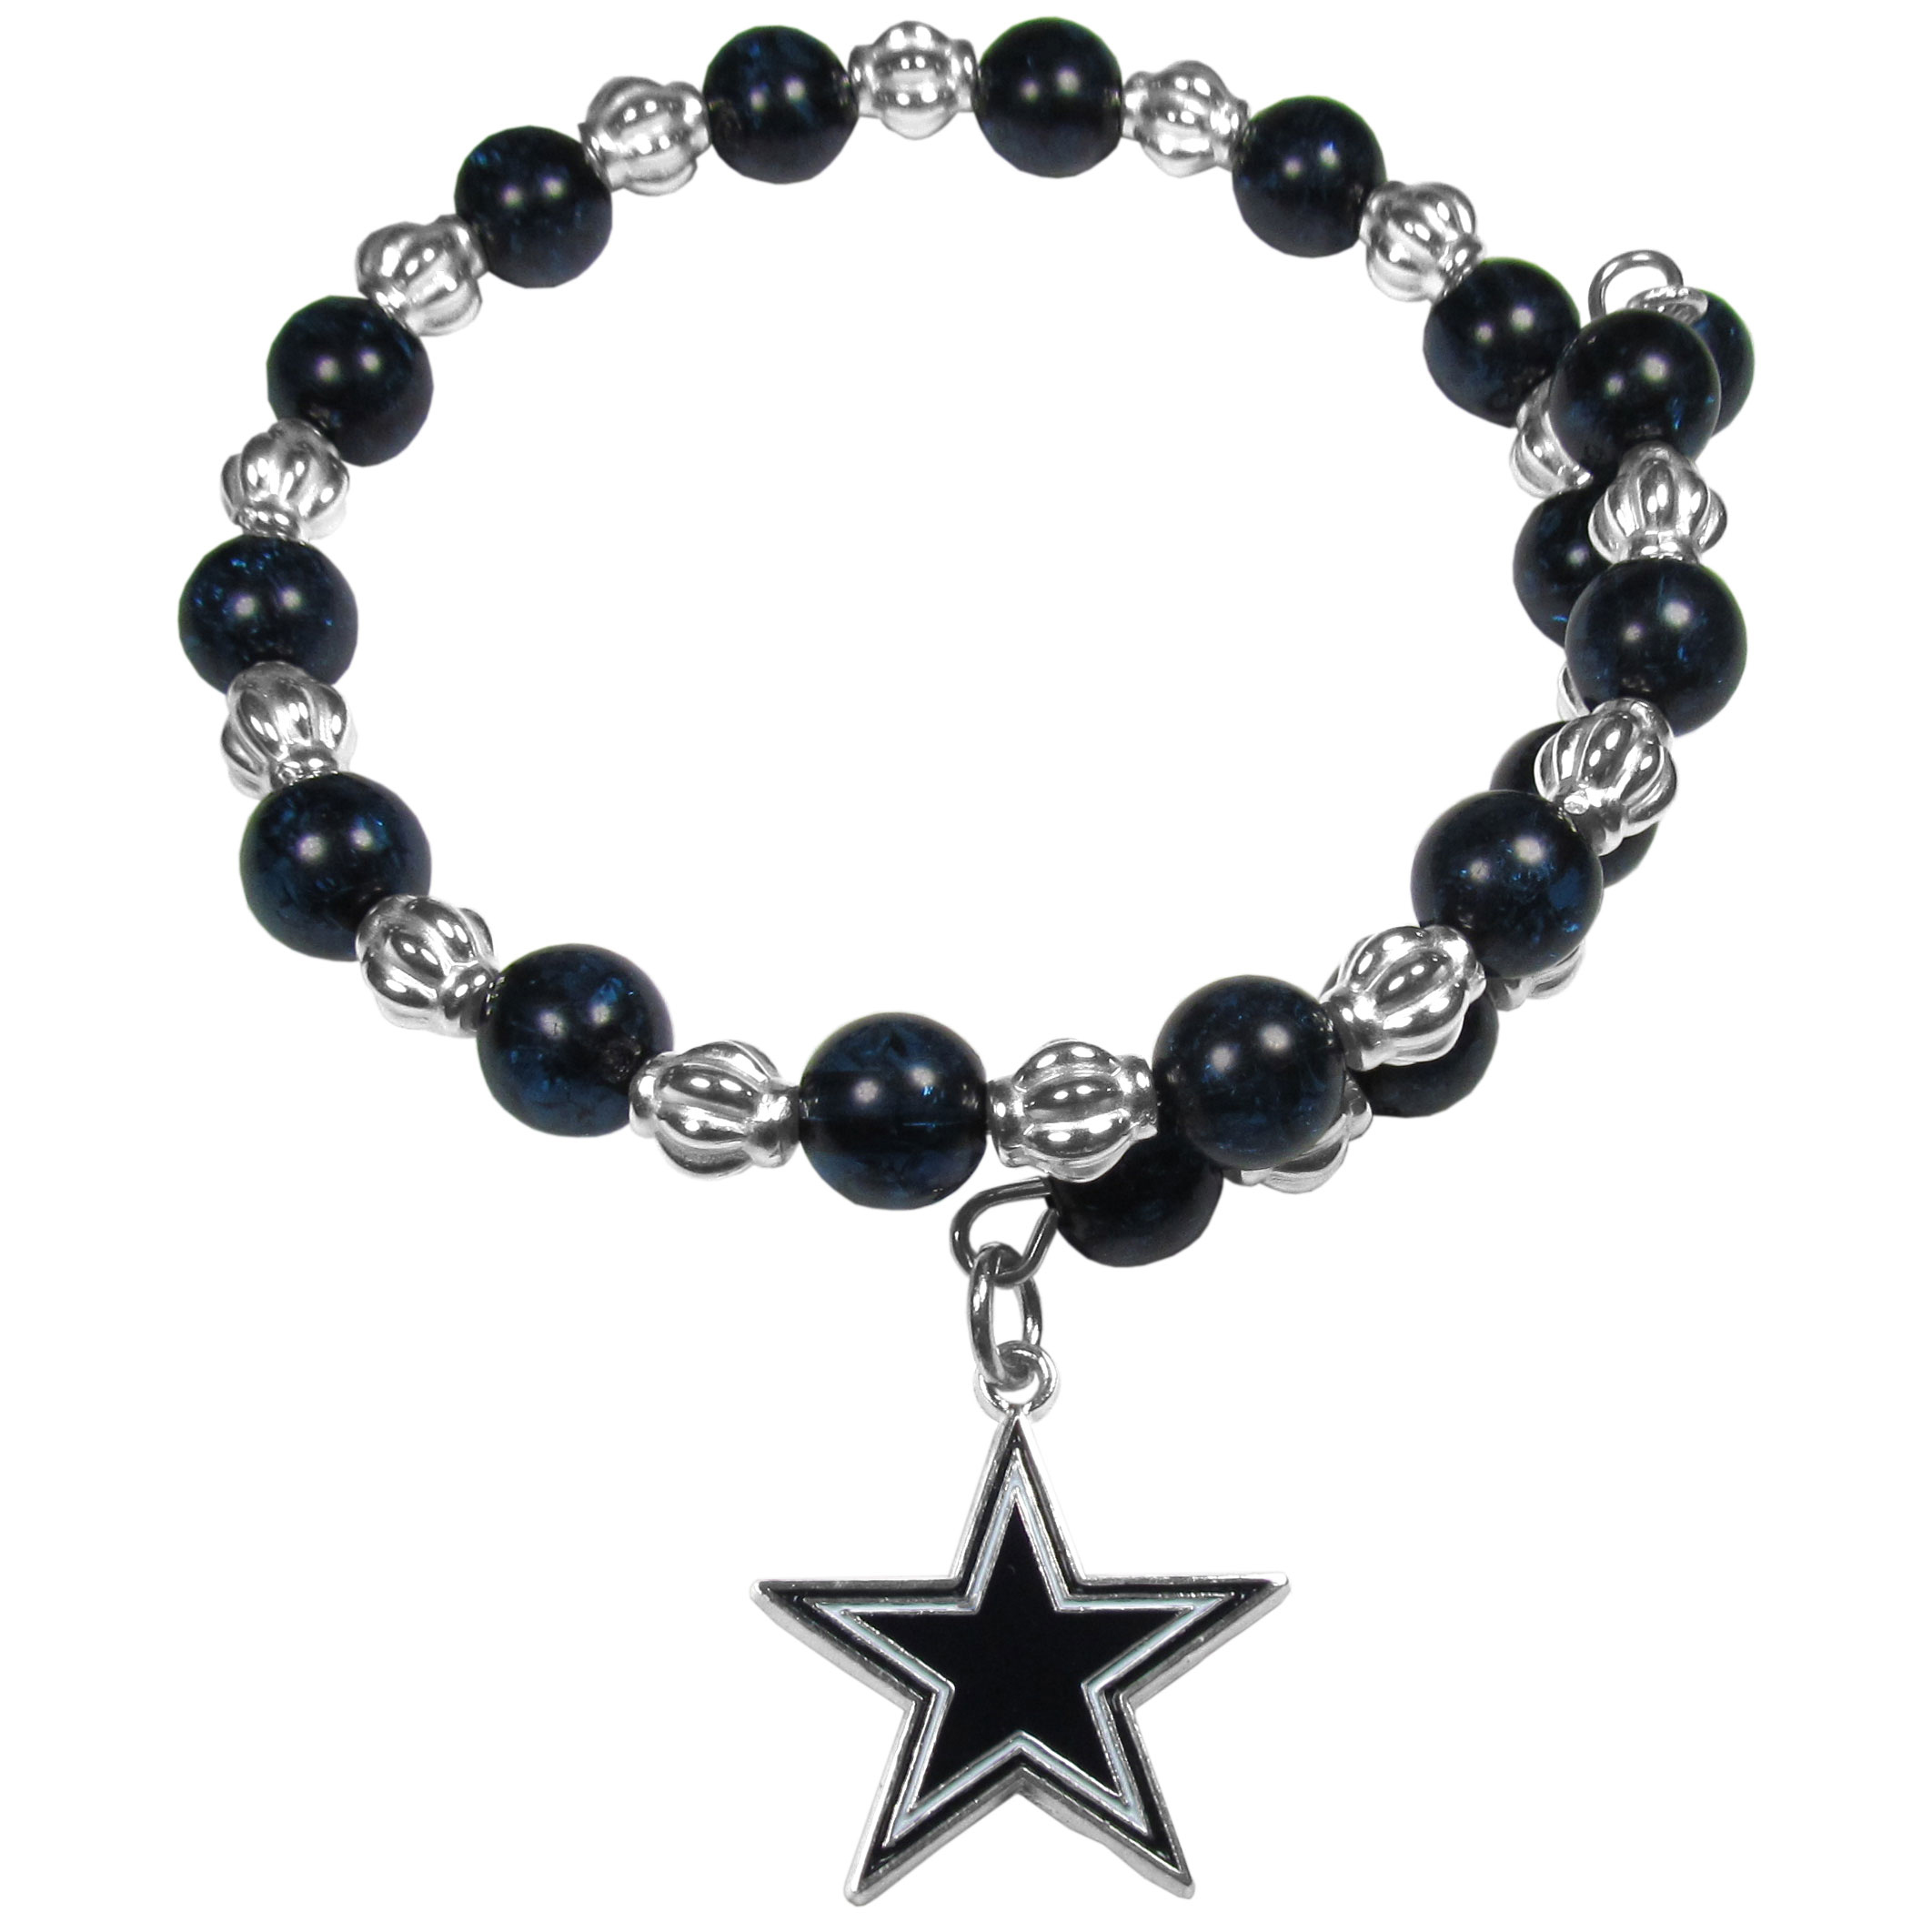 Dallas Cowboys Bead Memory Wire Bracelet - Our Dallas Cowboys memory wire bead bracelet is trendy way to show off your love of the game. The double wrap bracelet is completely covered in 7.5 mm crystals that are broken up with silvertoned beads creating a designer look with a sporty twist. The bracelet features a fully cast, metal team charm that has expertly enameled team colors. This fashion jewelry piece is a must-have for the die-hard fan that chic look that can dress up any outfit.